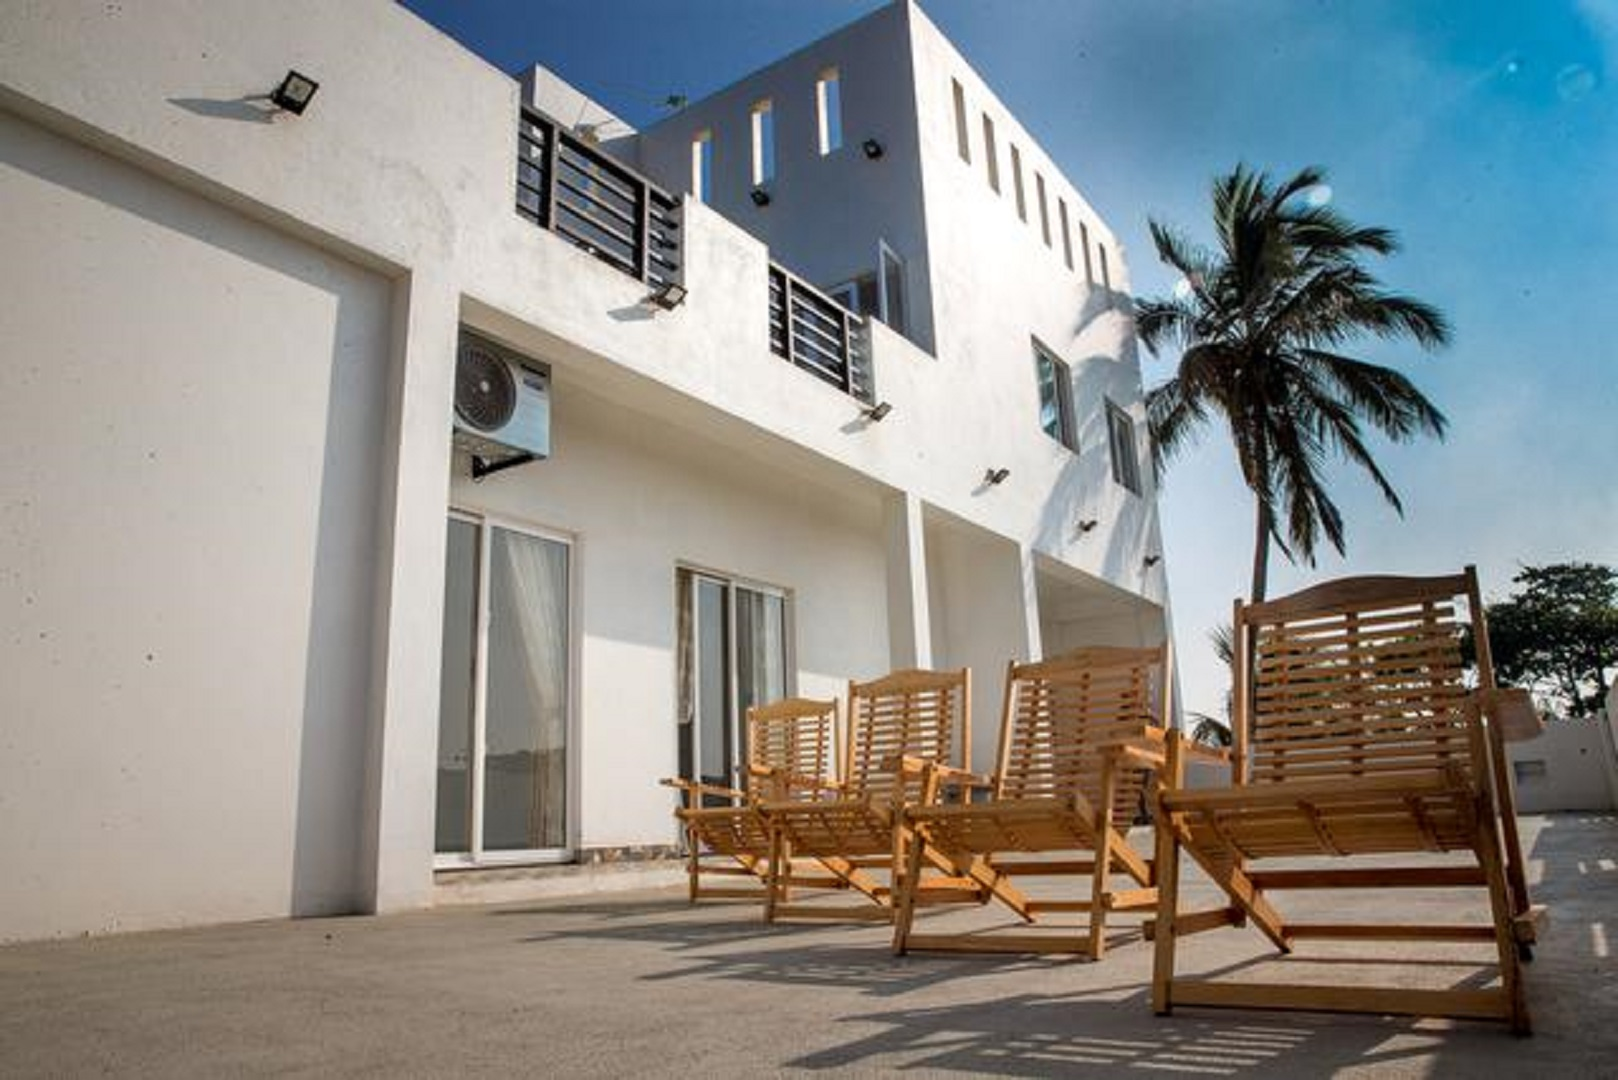 A chair sitting in front of a building at Negombo BnB.